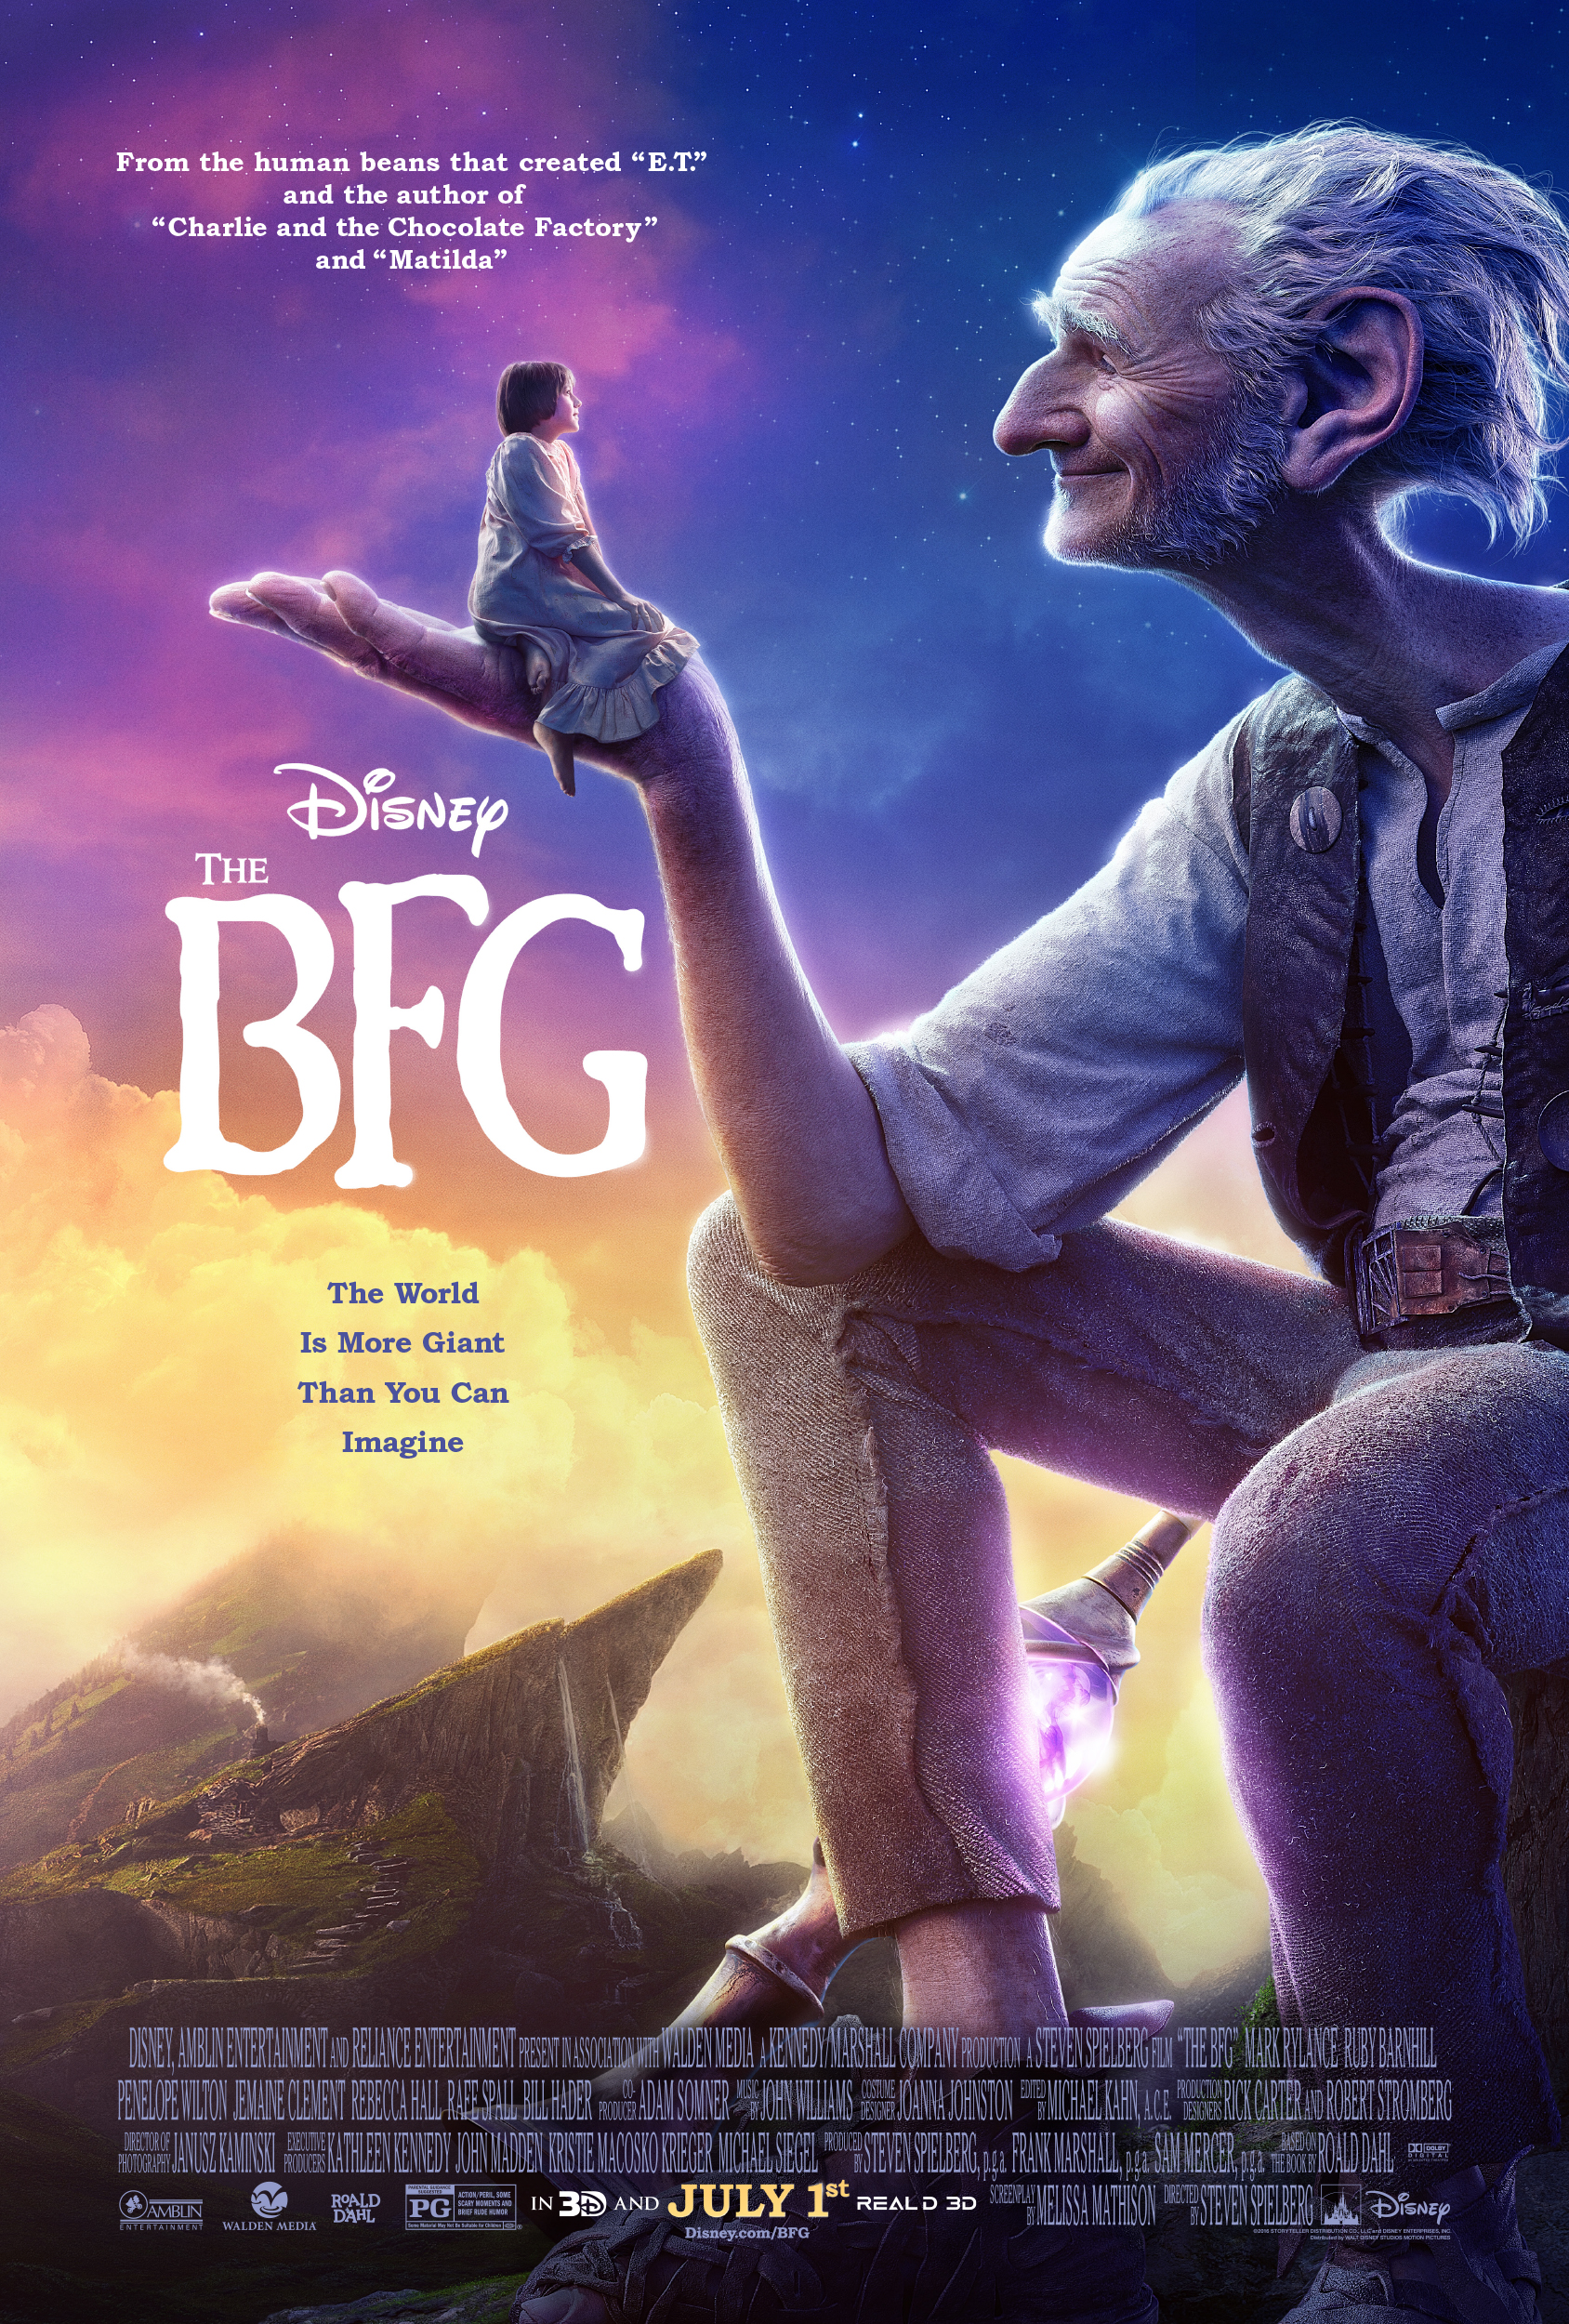 the bfg poster Ranking: Every Steven Spielberg Movie from Worst to Best